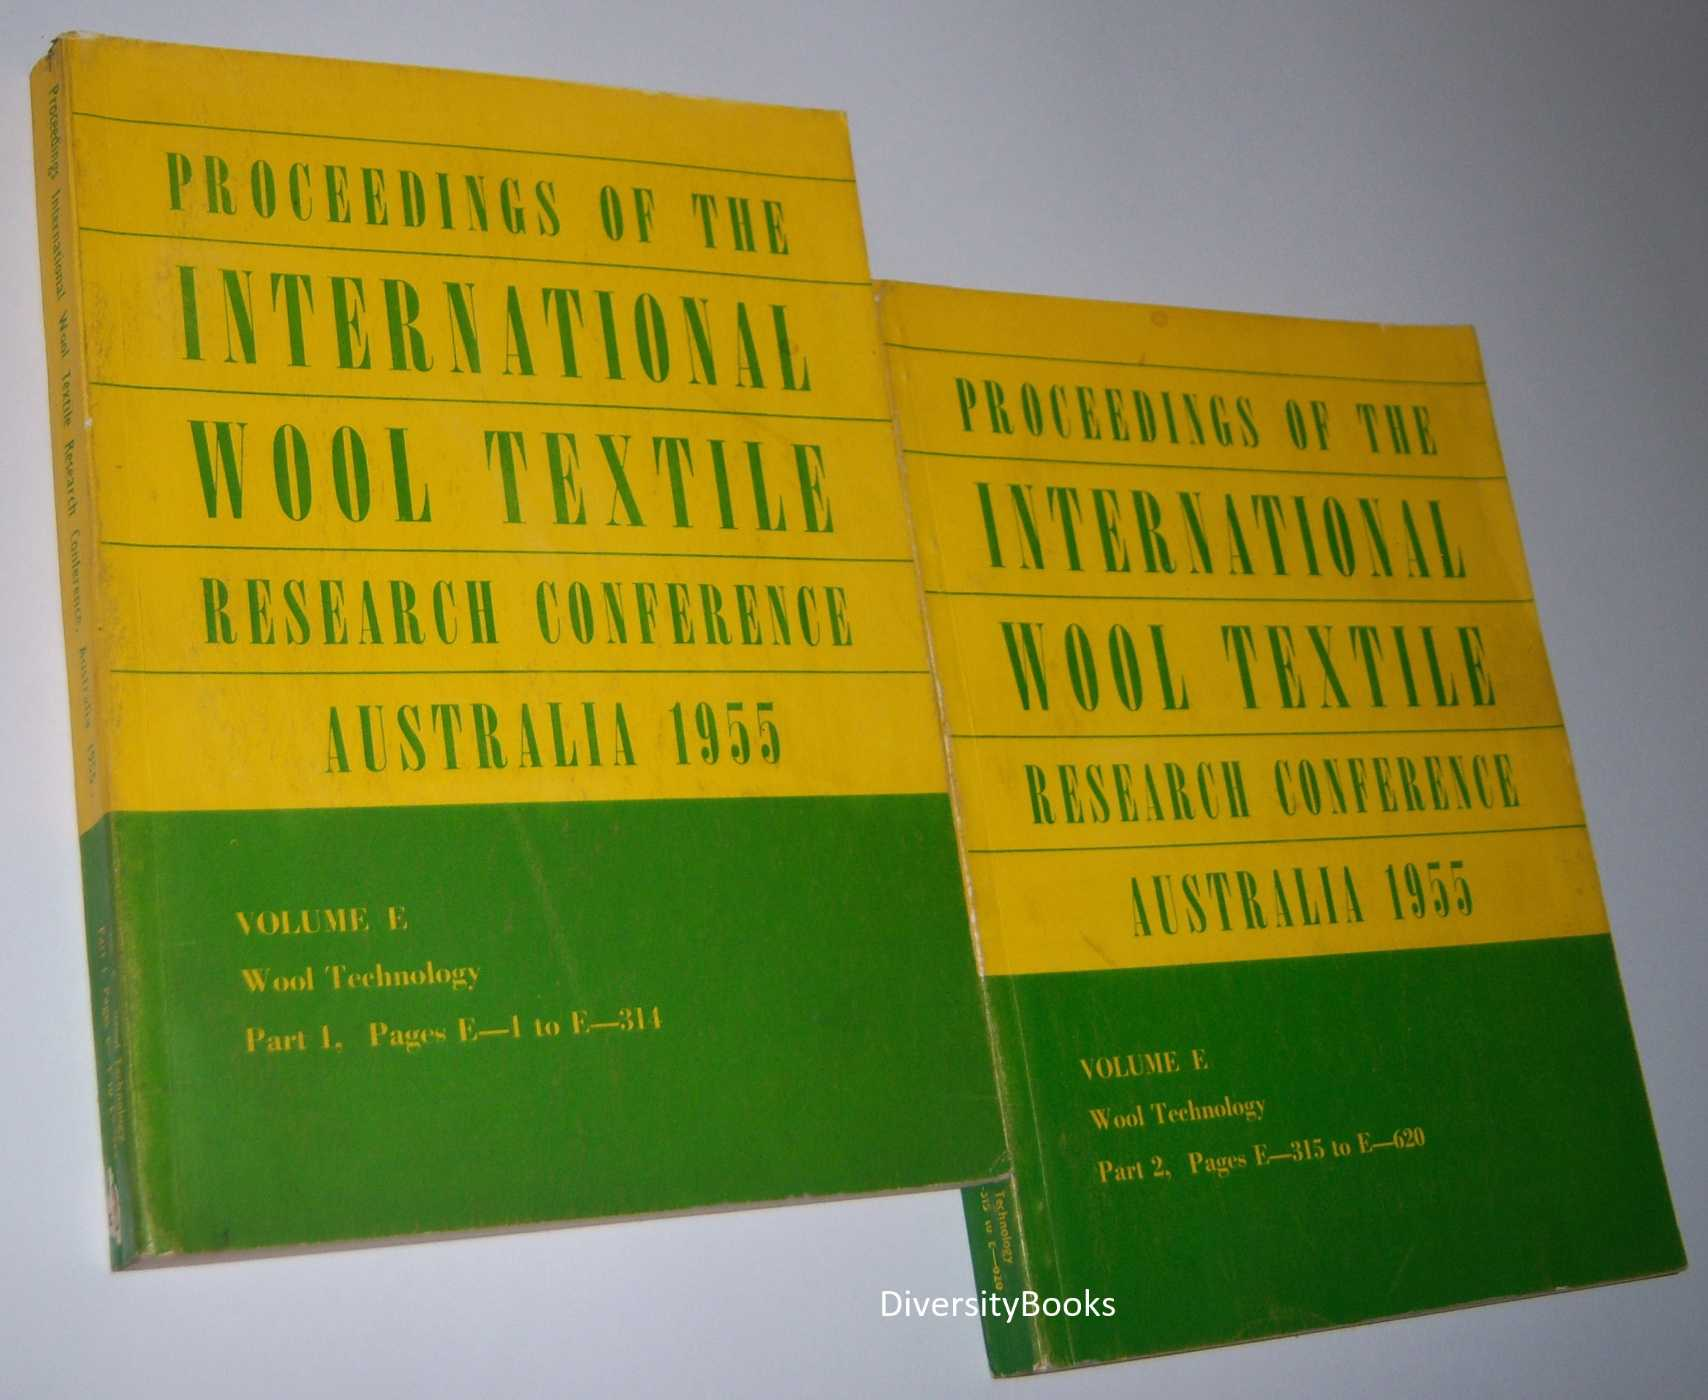 Image for PROCEEDINGS OF THE INTERNATIONAL WOOL TEXTILE RESEARCH CONFERENCE AUSTRALIA 1955. VOL. E, Wool Technology Parts 1and 2